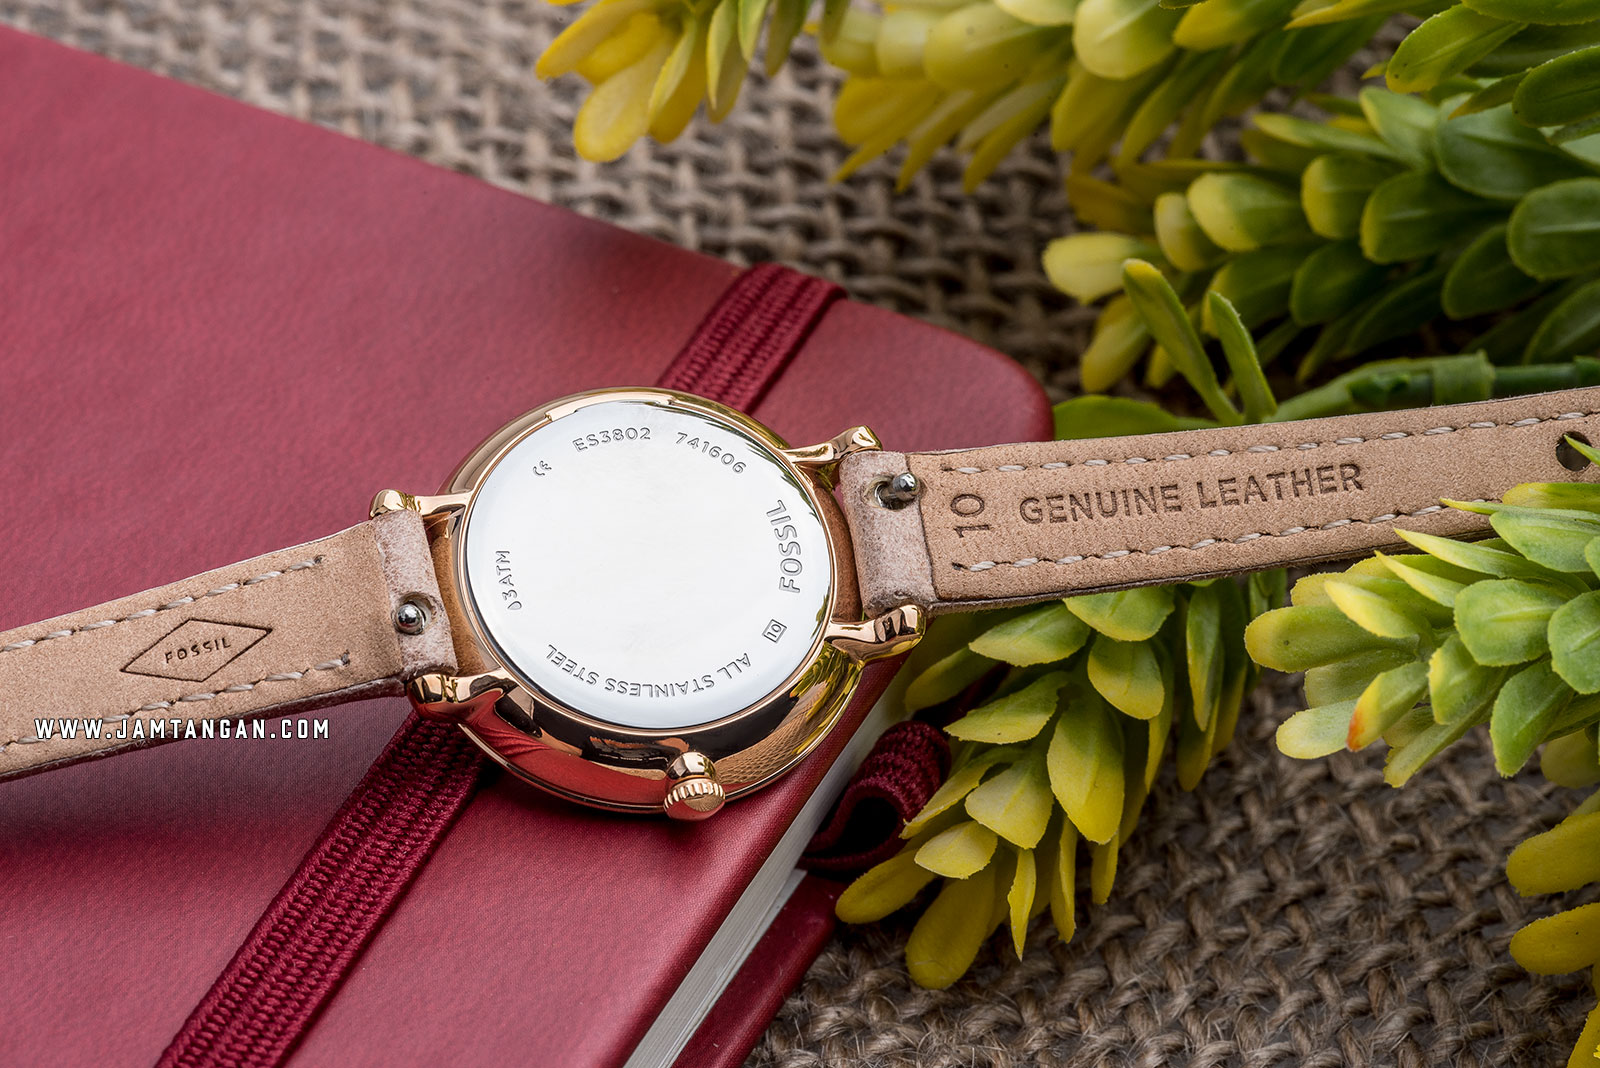 Fossil ES3802 Jacqueline Mini Sand Leather Watch Machtwatch